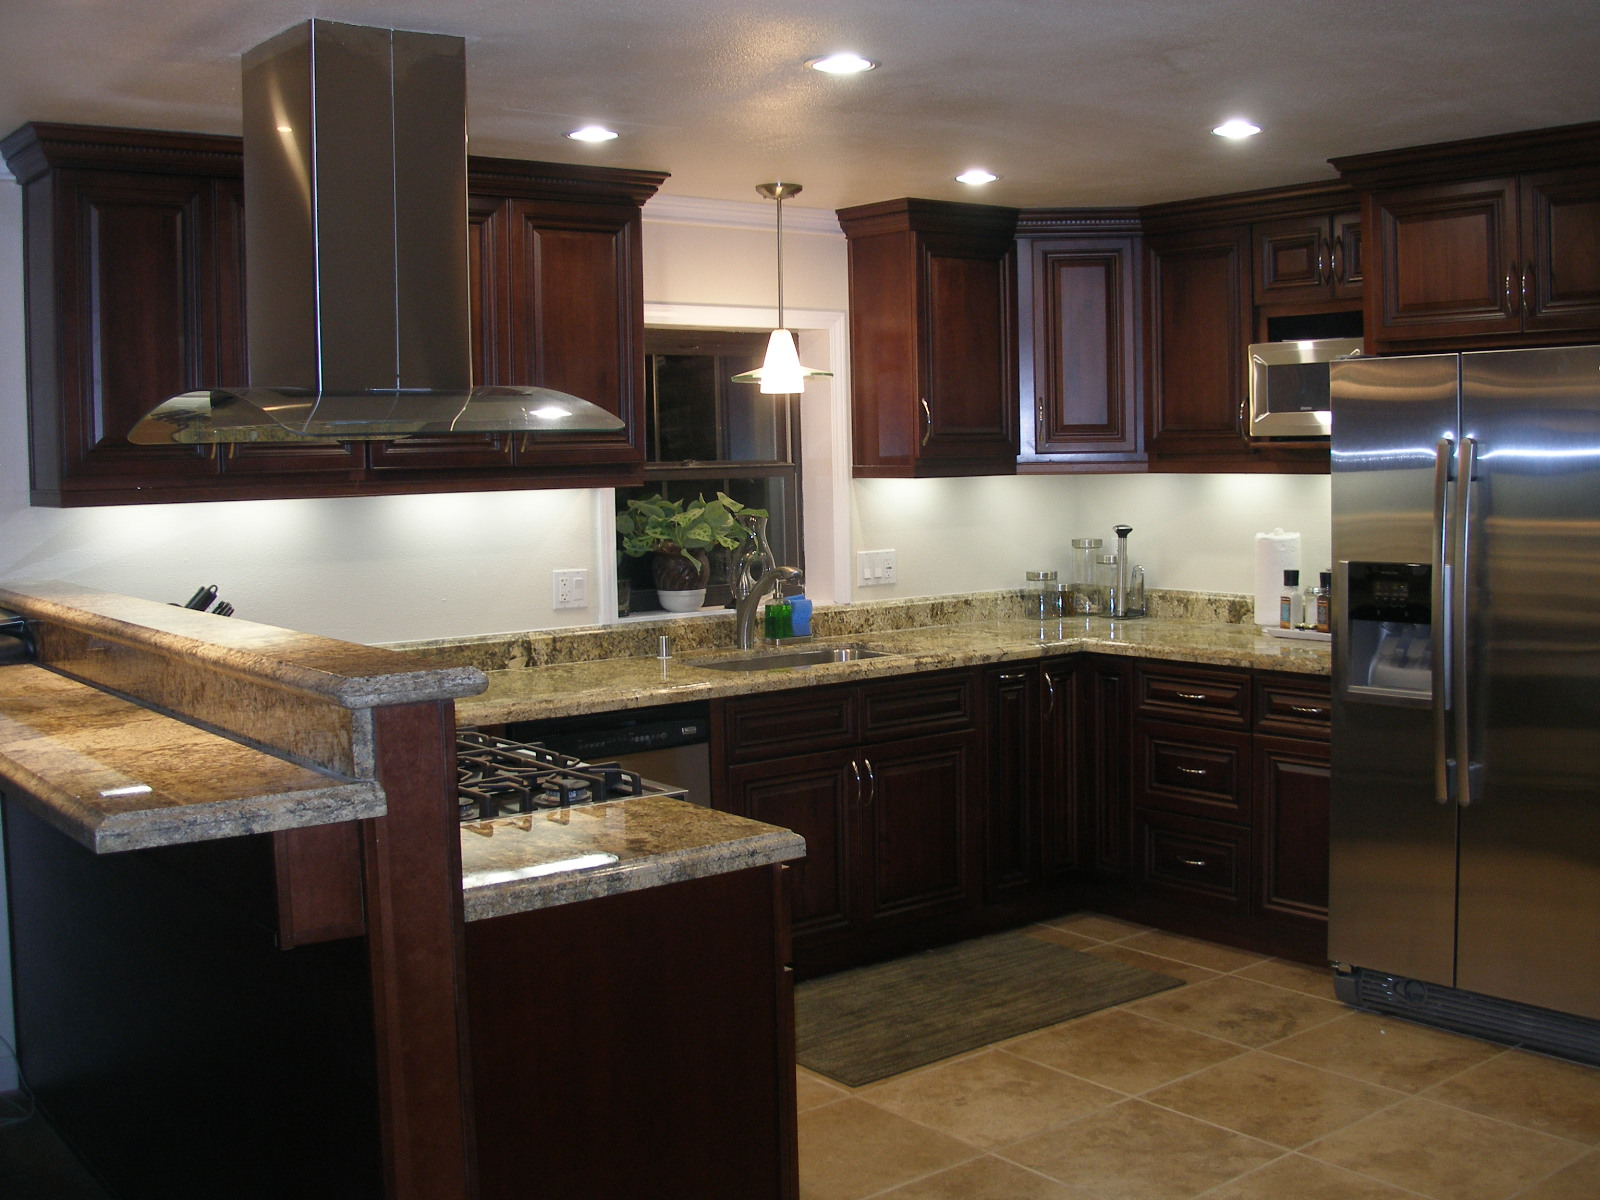 Kitchen remodeling brad t jones construction for Kitchen remodel designs pictures